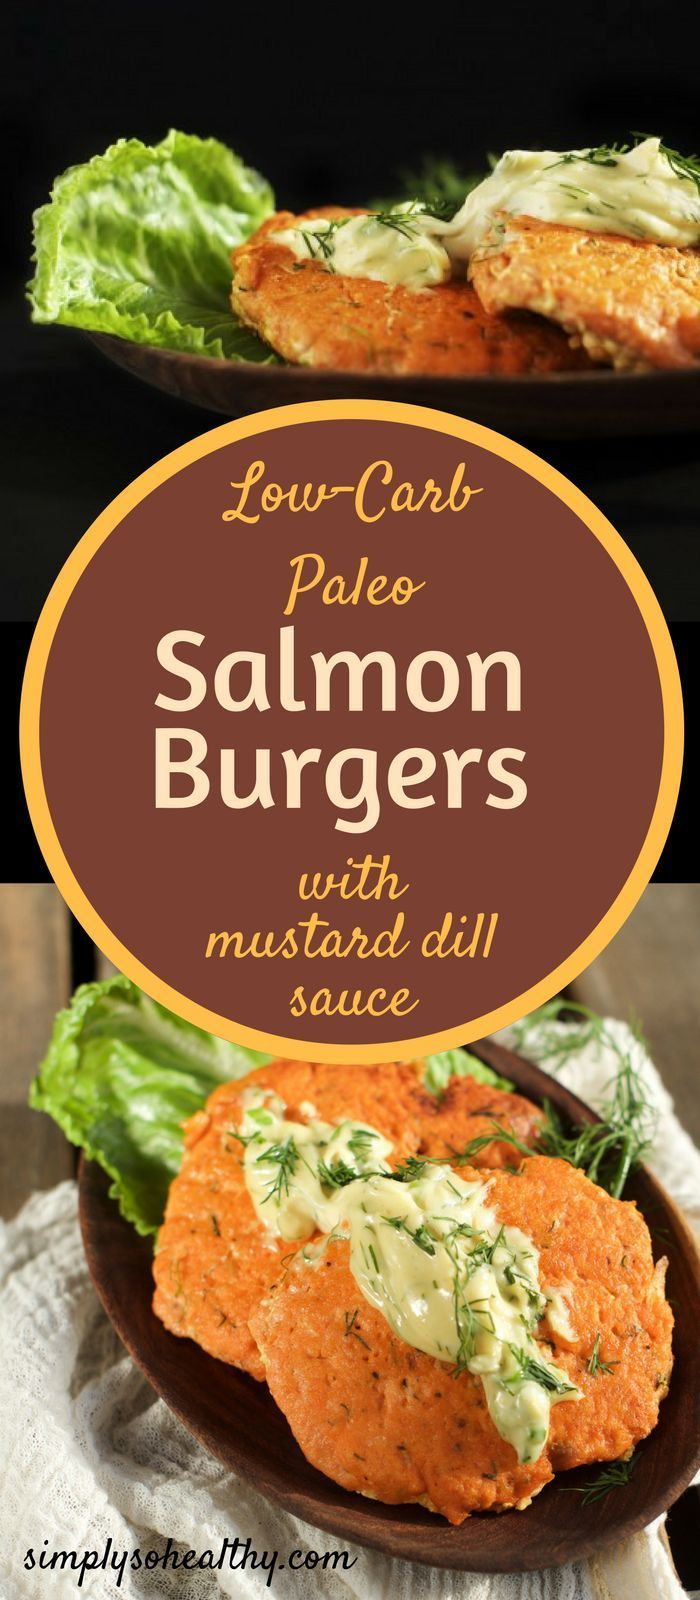 These Salmon Burgers With Mustard Dill Sauce are low-carb, gluten-free, keto and Paleo. They come together quickly and easily with the help of a food processor. The tender flakes of salmon with hints of scallion and dill are served with a creamy sauce with tones of mustard and dill. They make the perfect lunch, dinner or could be made in miniature for an appetizer.